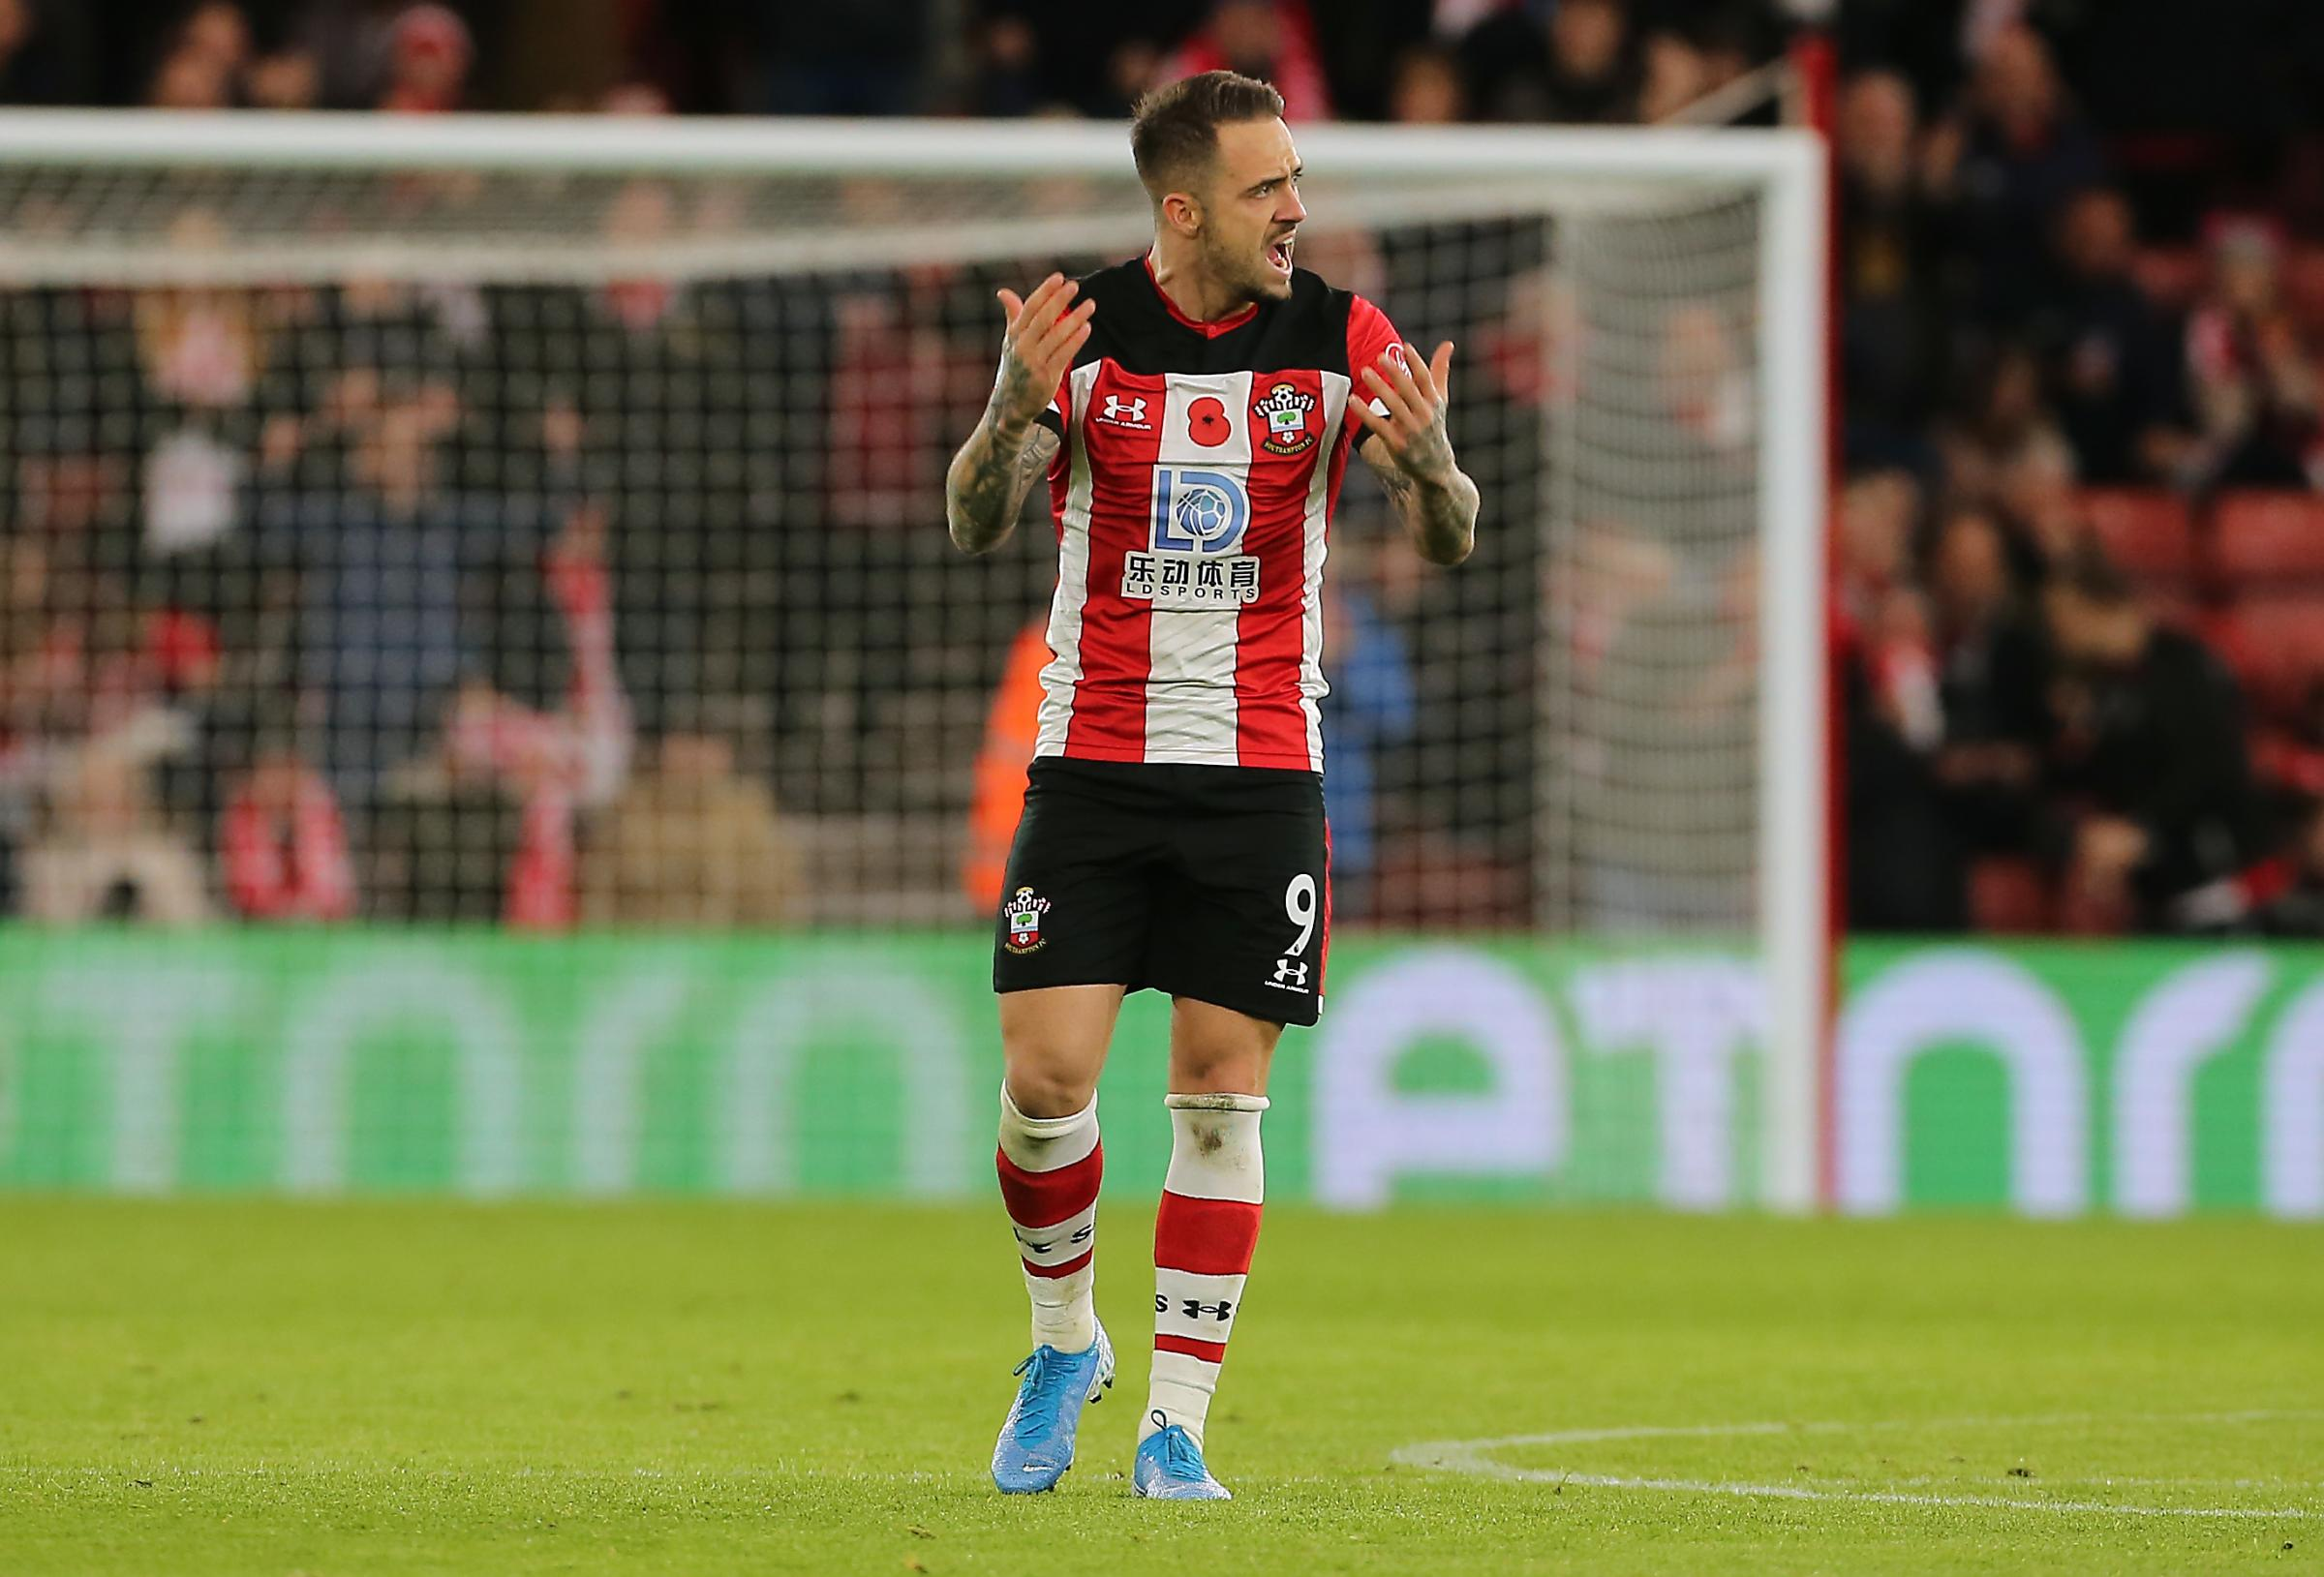 Southampton manager Ralph Hasenhuttl won't run Danny Ings into the ground